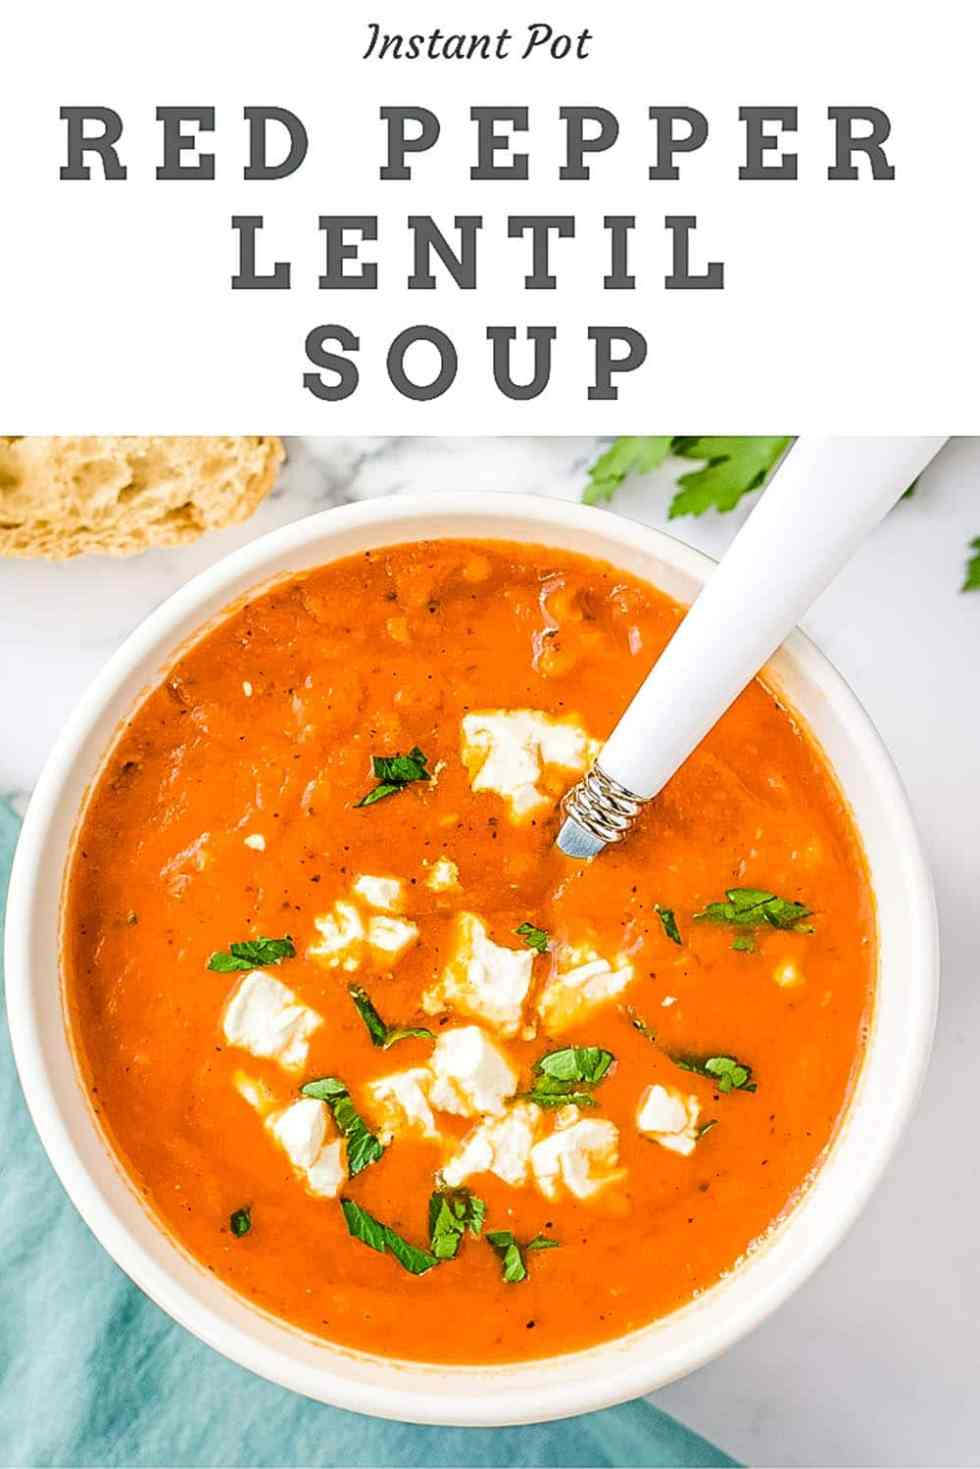 Instant pot red pepper lentil soup text and picture of garnished soup in a bowl